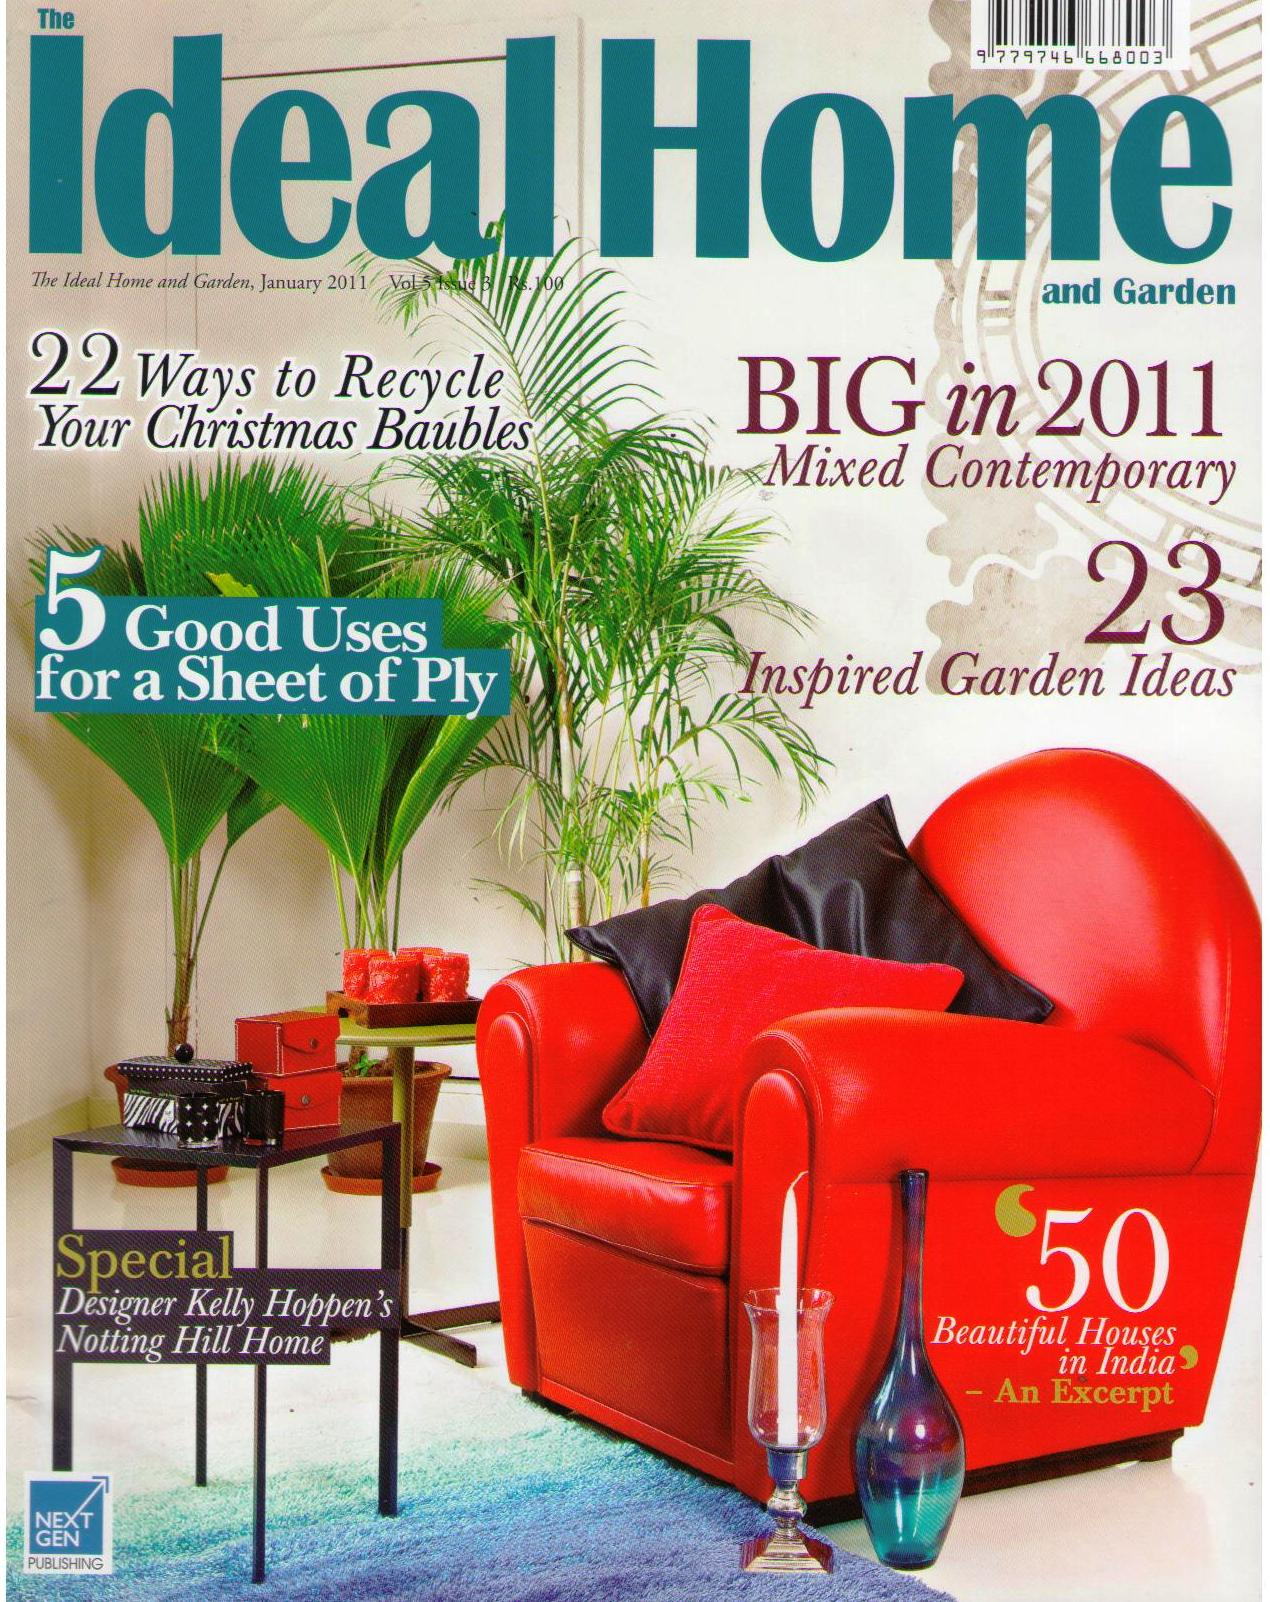 Ideal Homes & Gardens '10